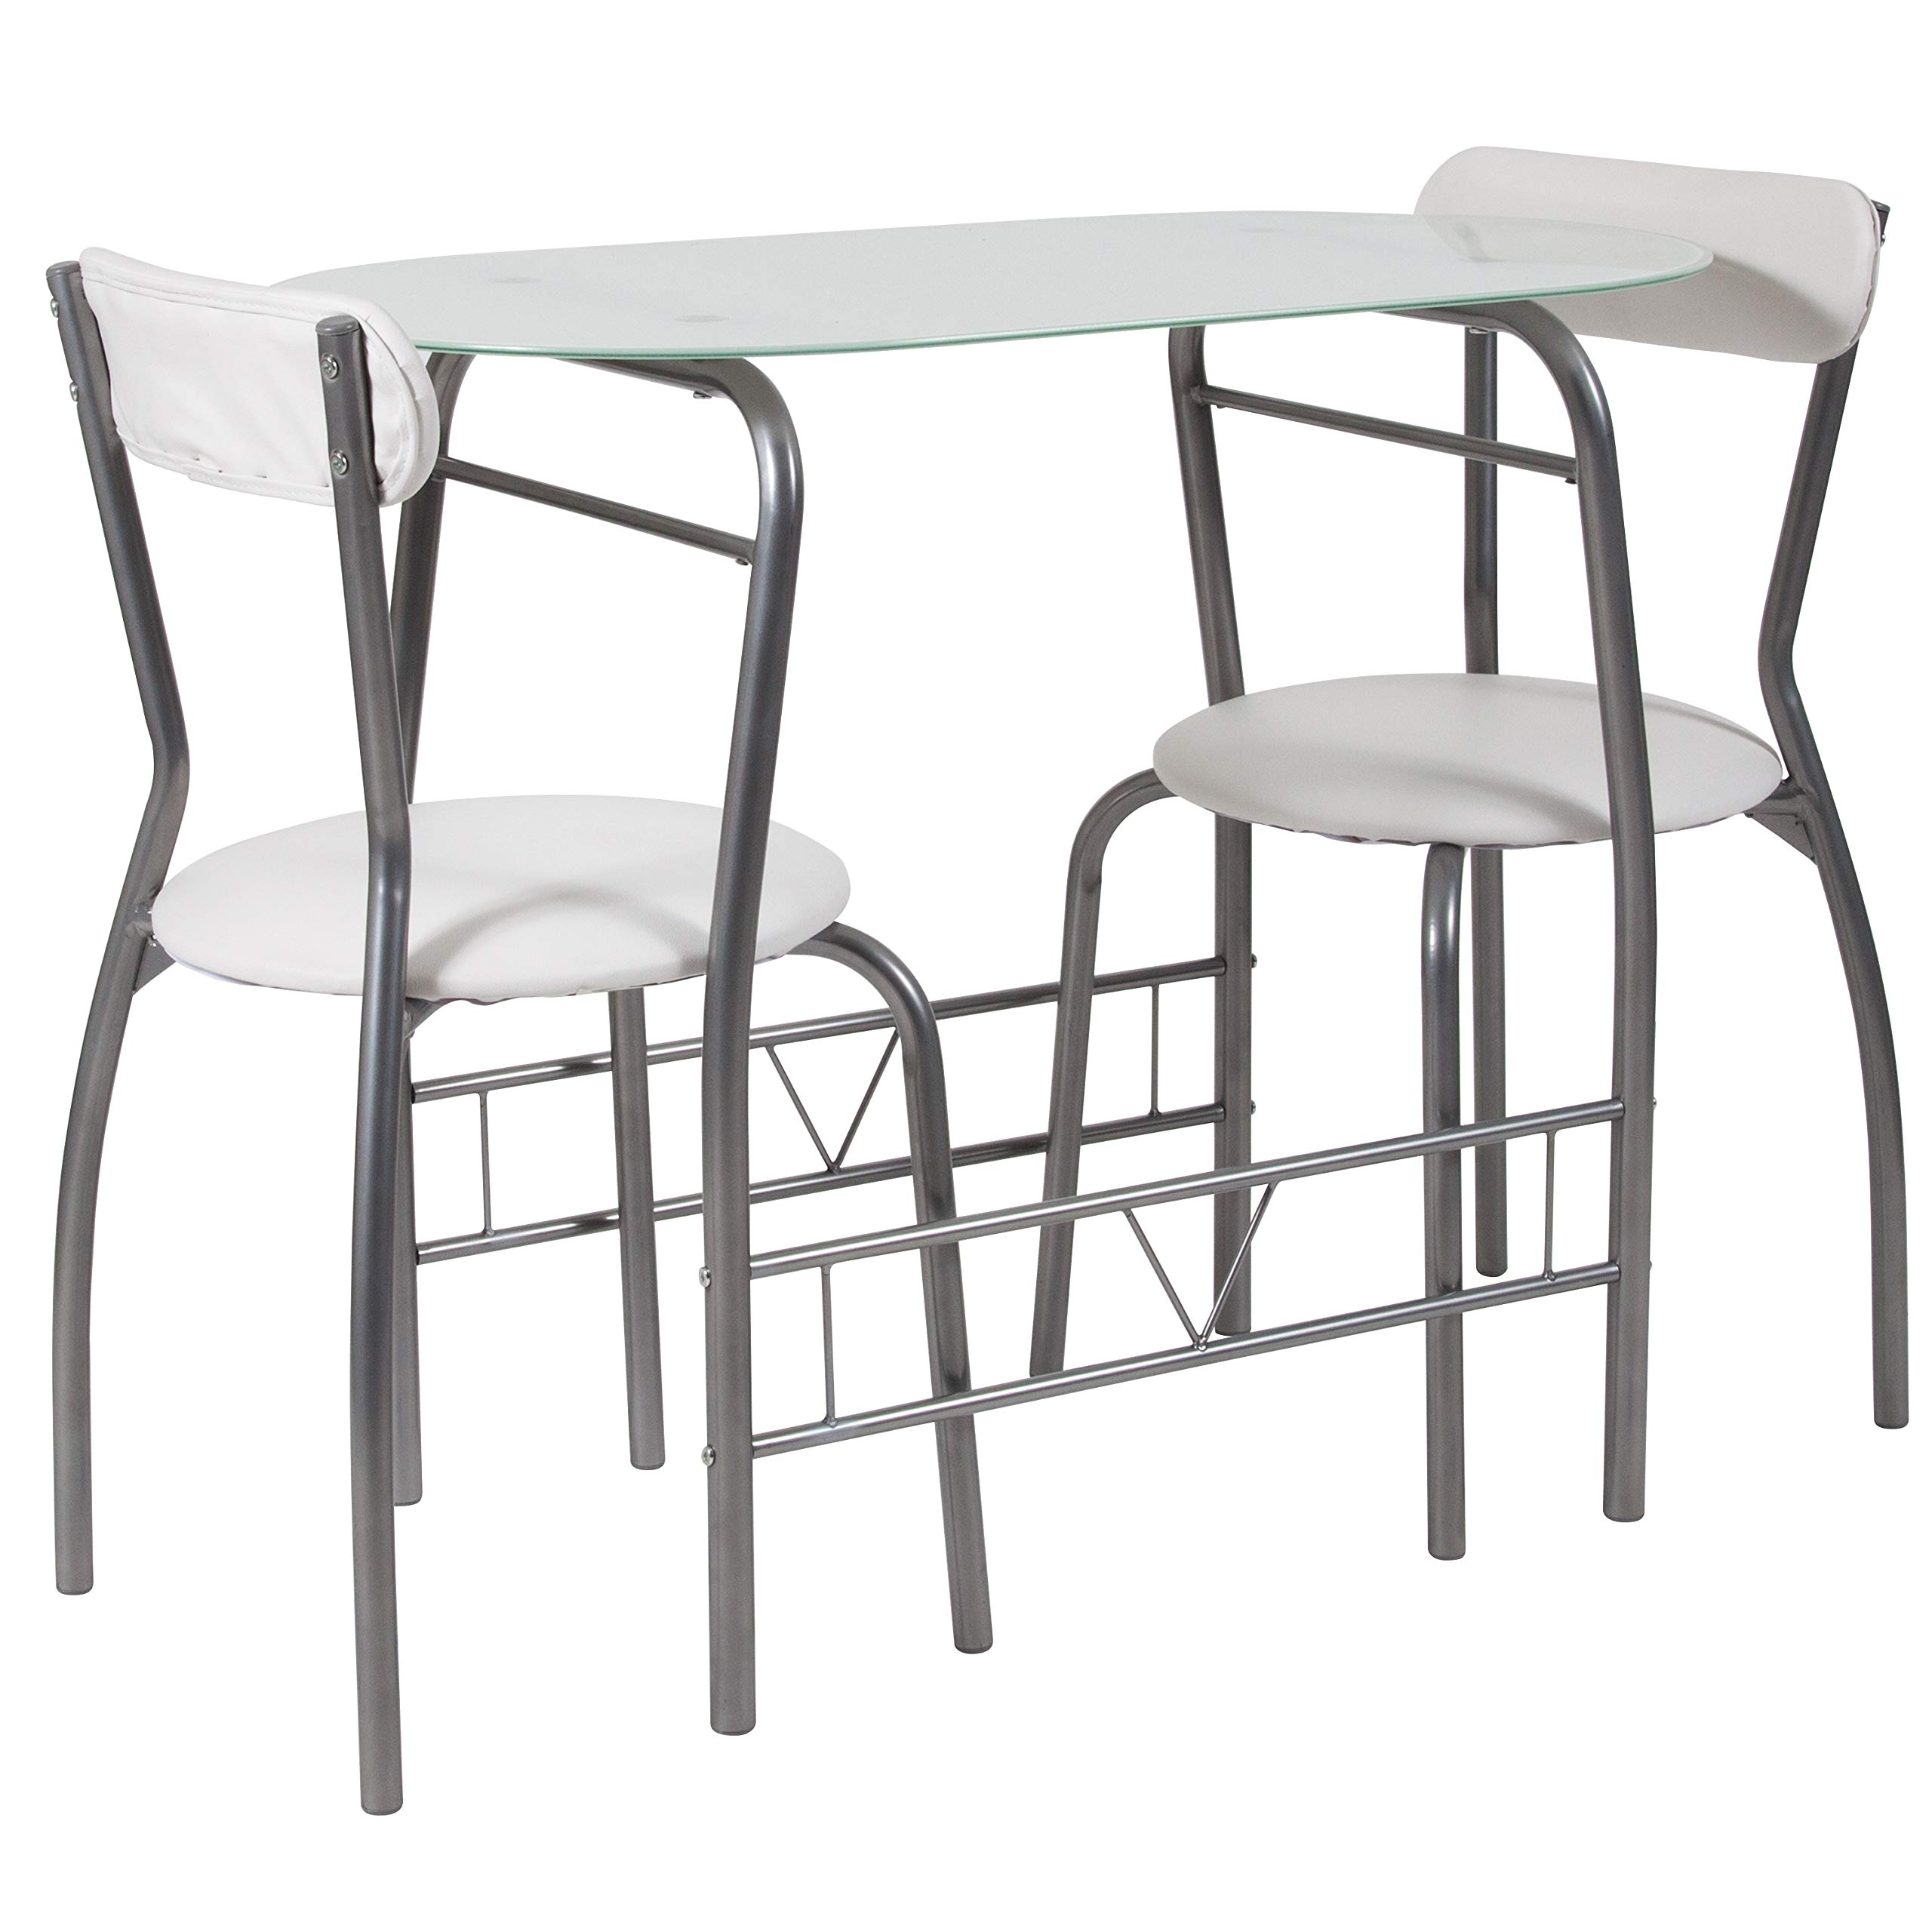 Flash Furniture Sutton 3 Piece Space-Saver Bistro Set with White Glass Top Table and White Vinyl Padded Chairs by Flash Furniture